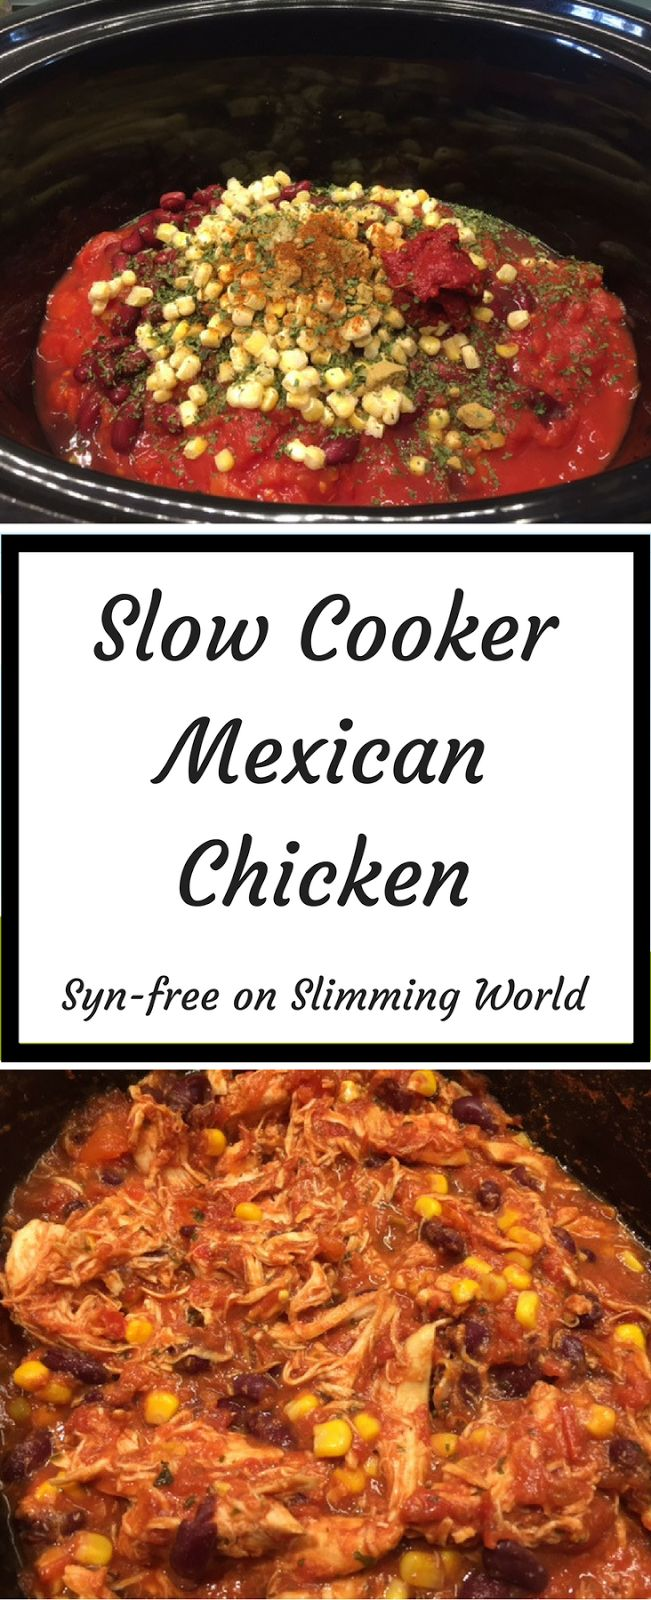 Slow Cooker Mexican Chicken- easy slow cooker recipe, syn-free on Slimming World. Great for batch-cooking for freezer meals.